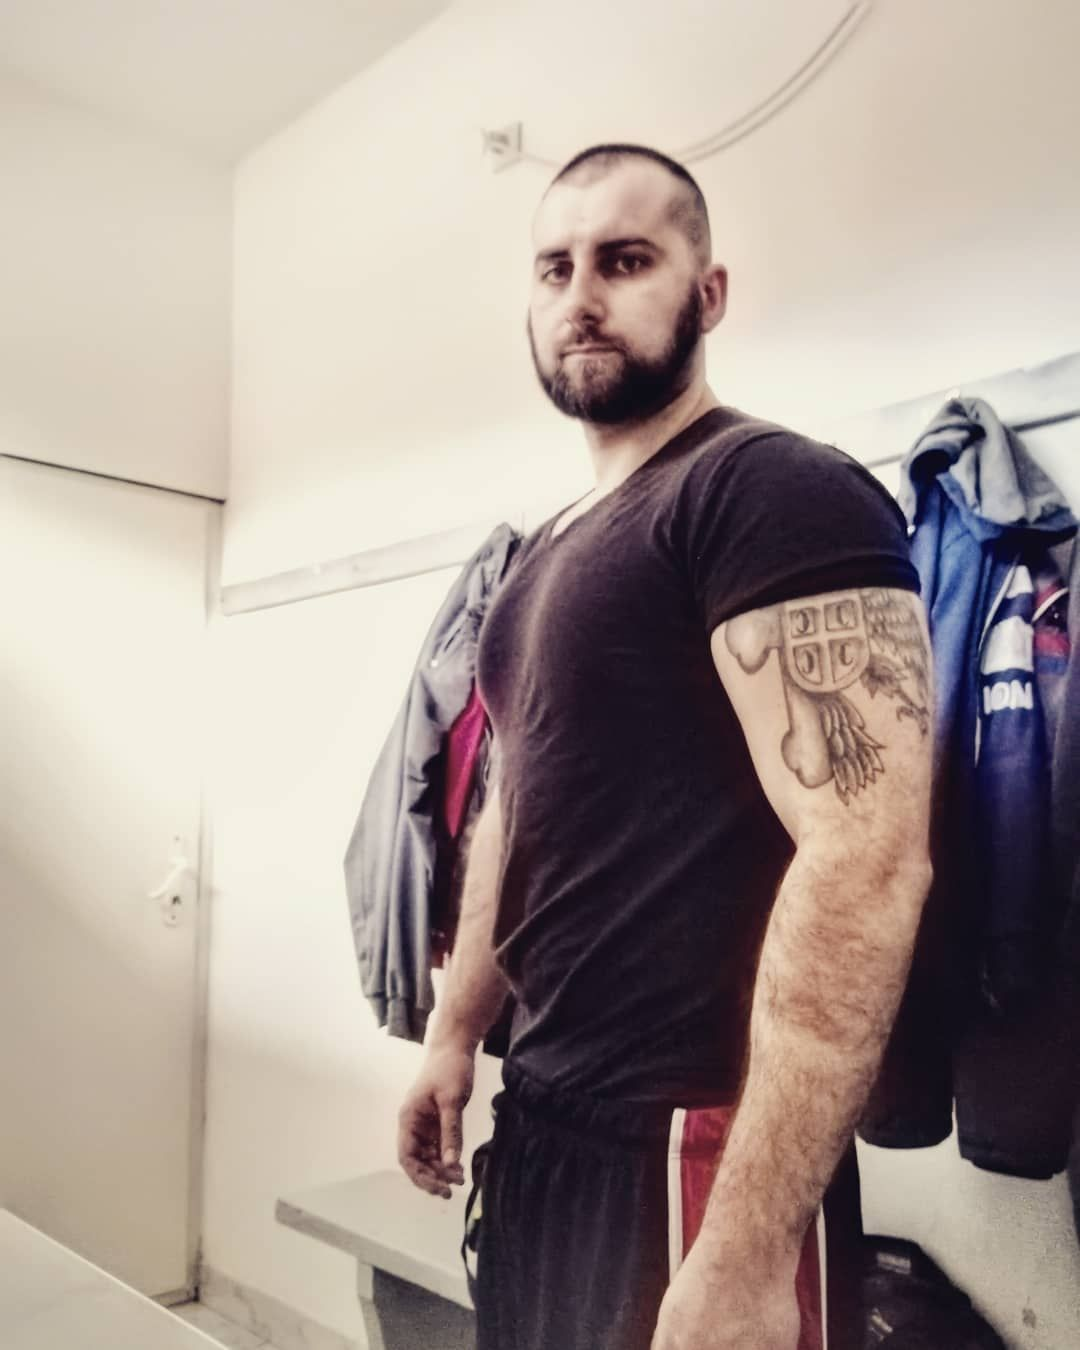 #gym #gymlife #gymtime #gymworkouts #training #chest #biceps #strong #muscle #natural #protein #tattoo #tattooink #beard #beast #instalike #instalove #moscow #athens #madrid #rome #berlin #poznan #stockholm #oslo #newyork #dubai #dublin #warsaw